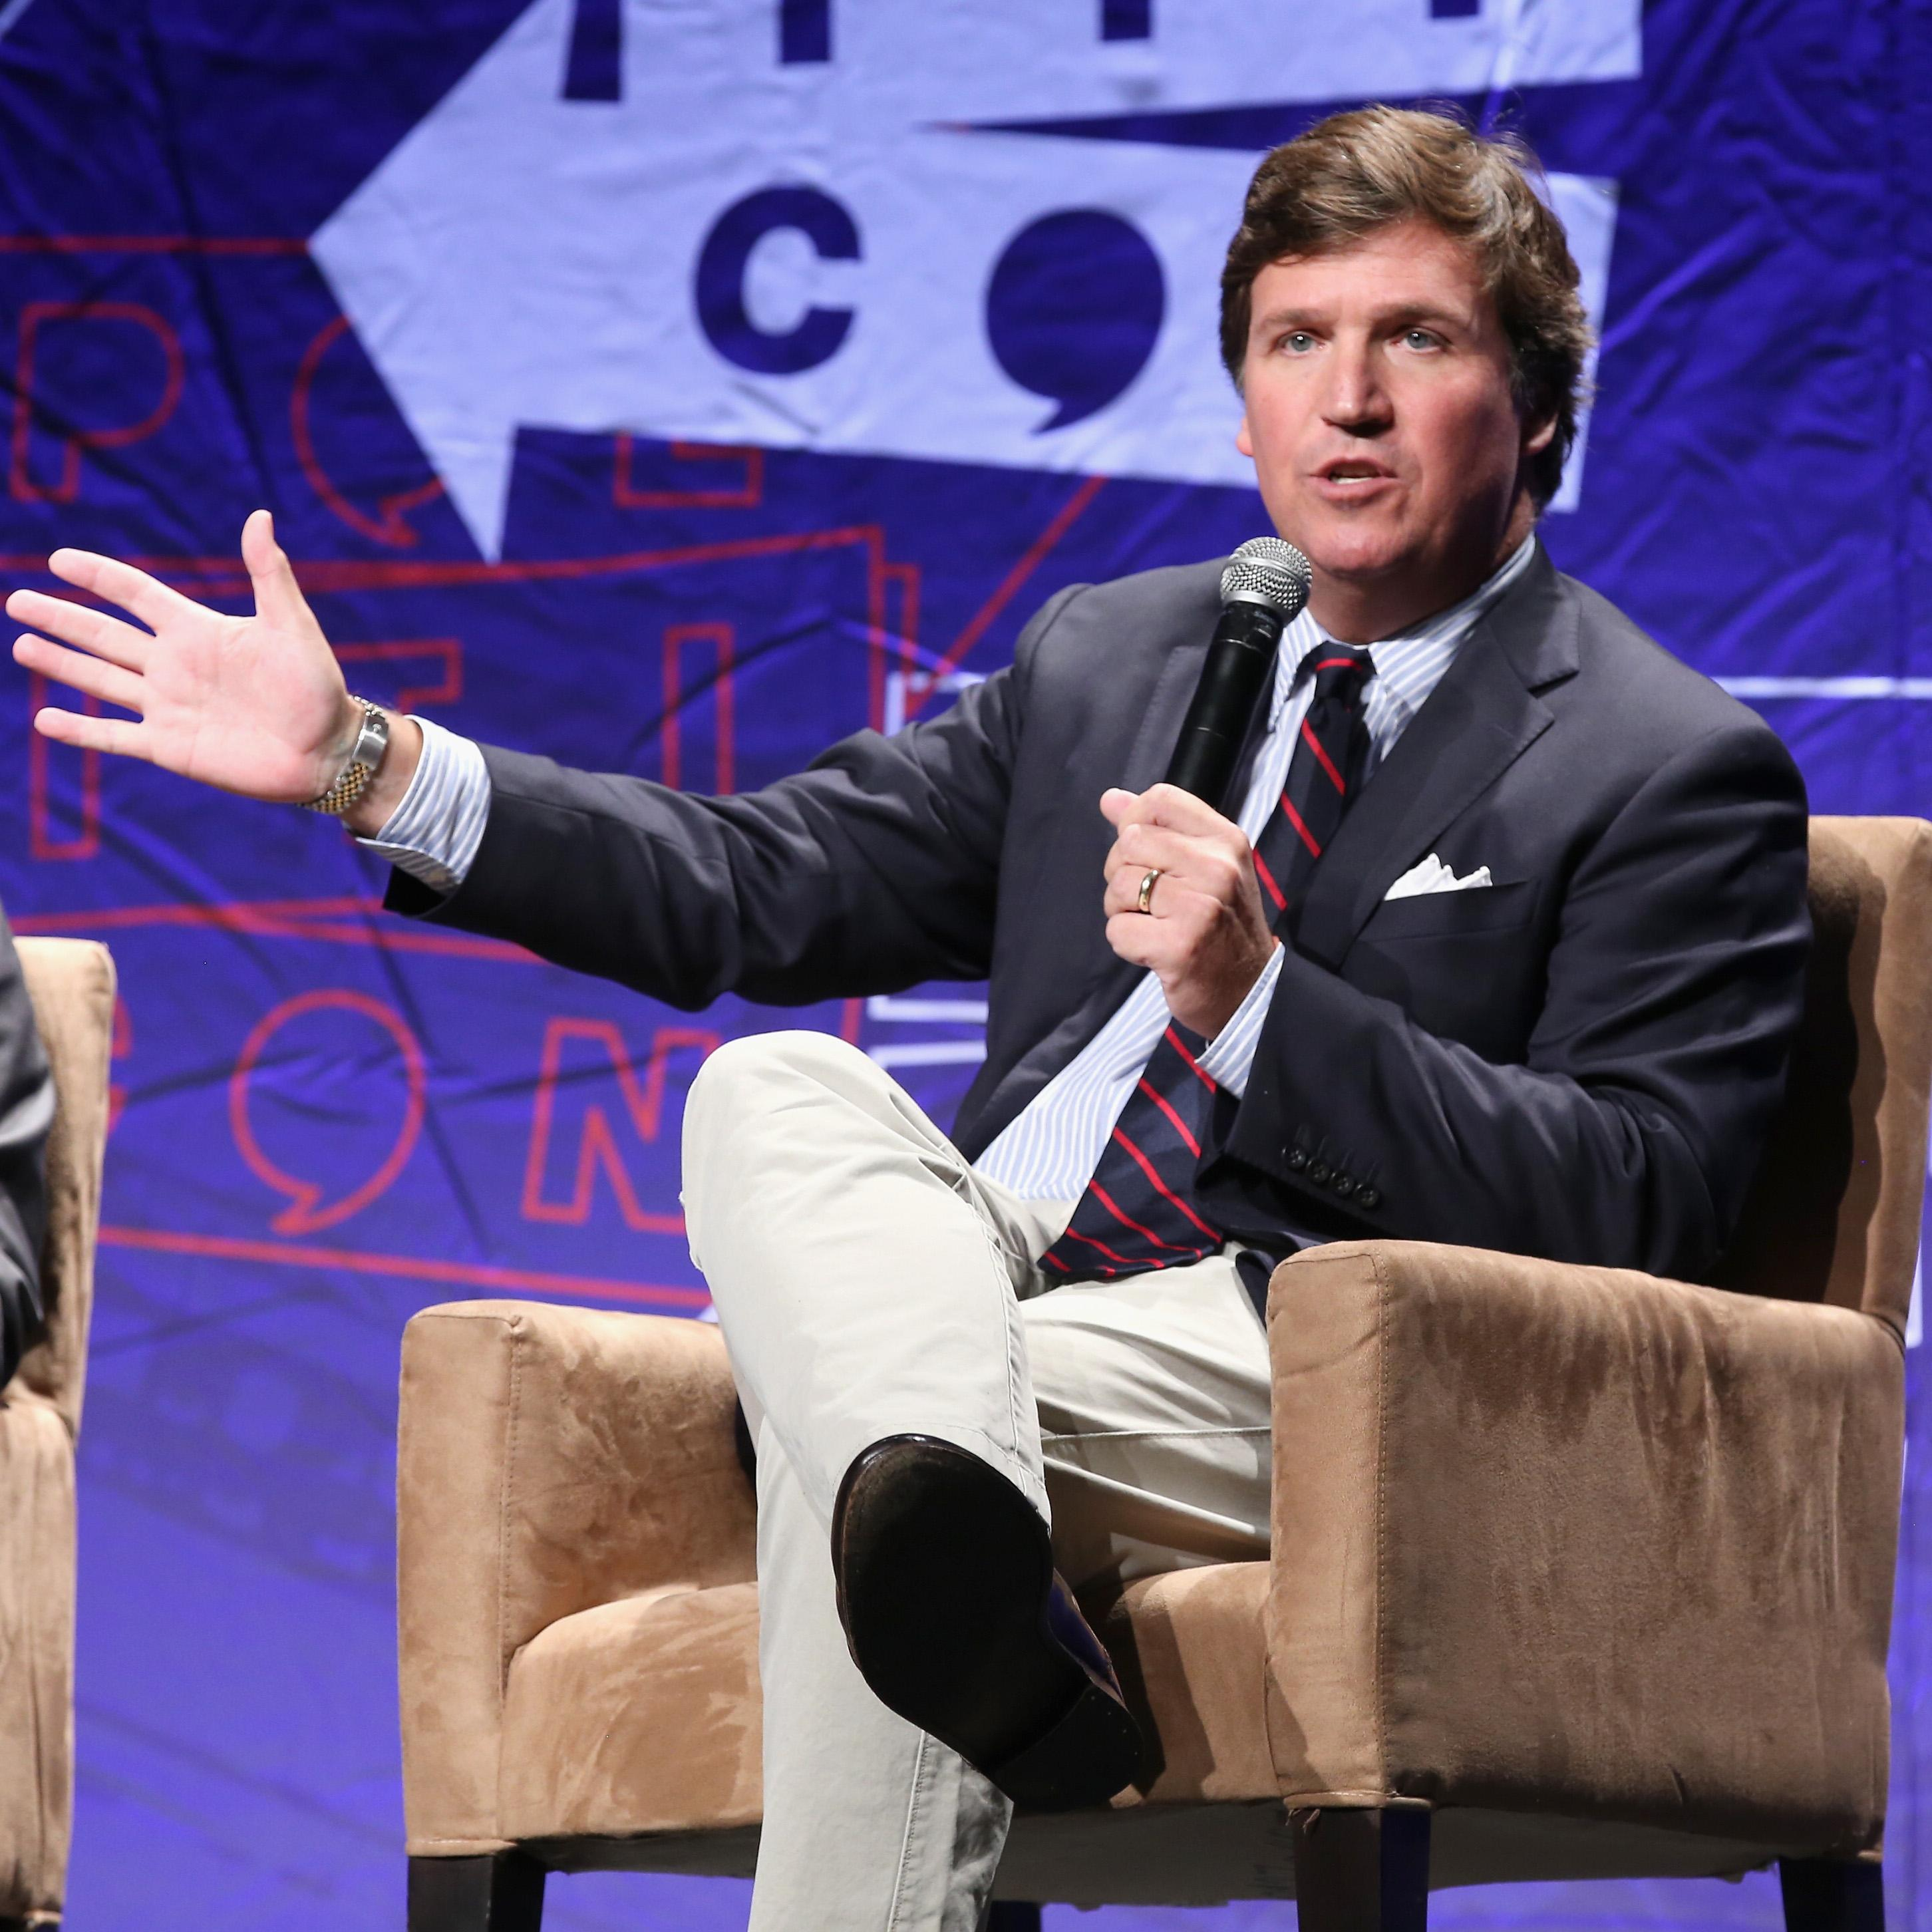 Tucker Carlson speaks into a microphone as he sits on a stage.